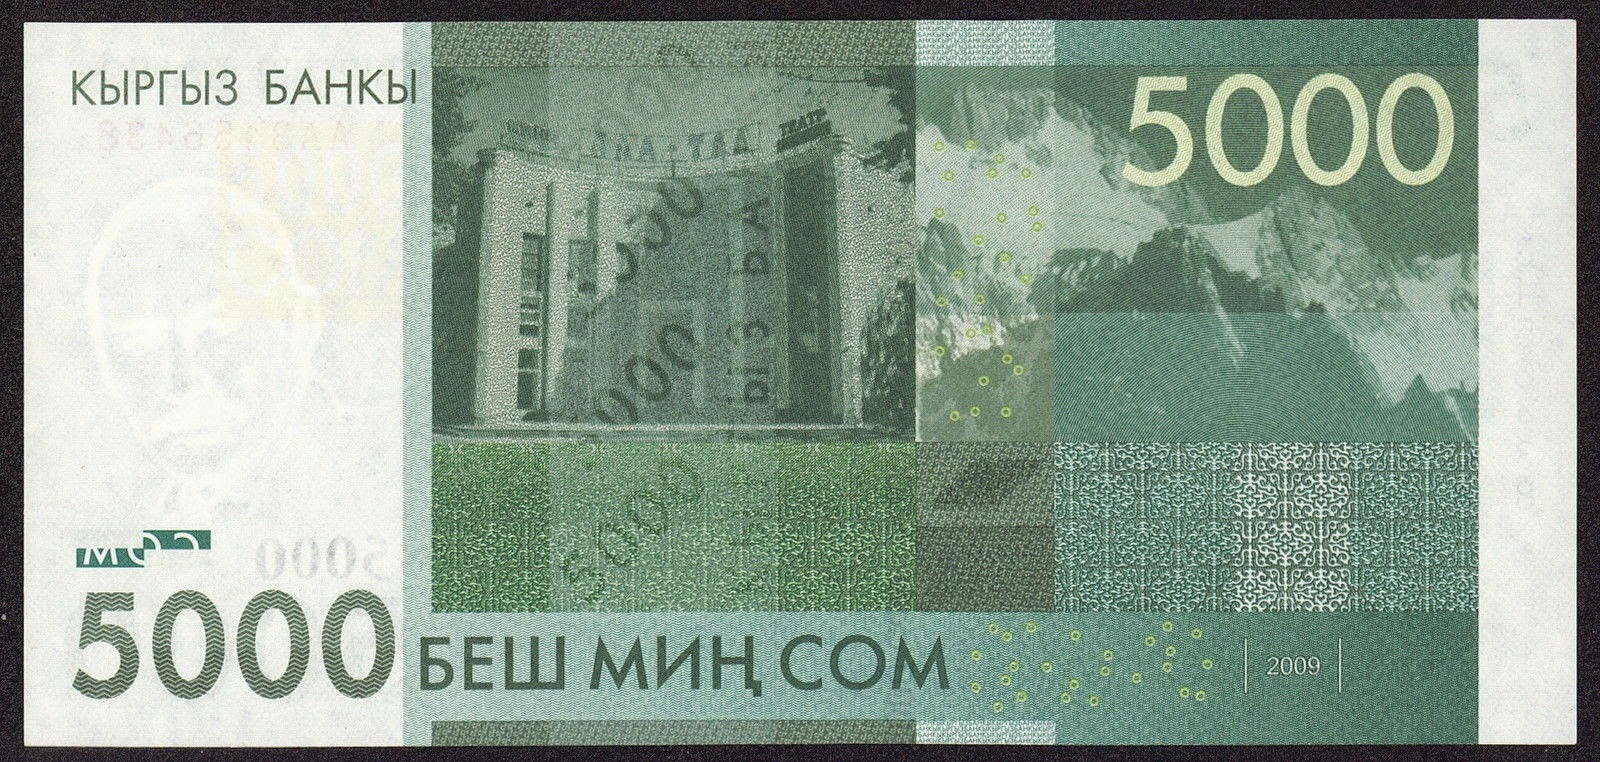 Kyrgyzstan Banknotes 5000 Som note